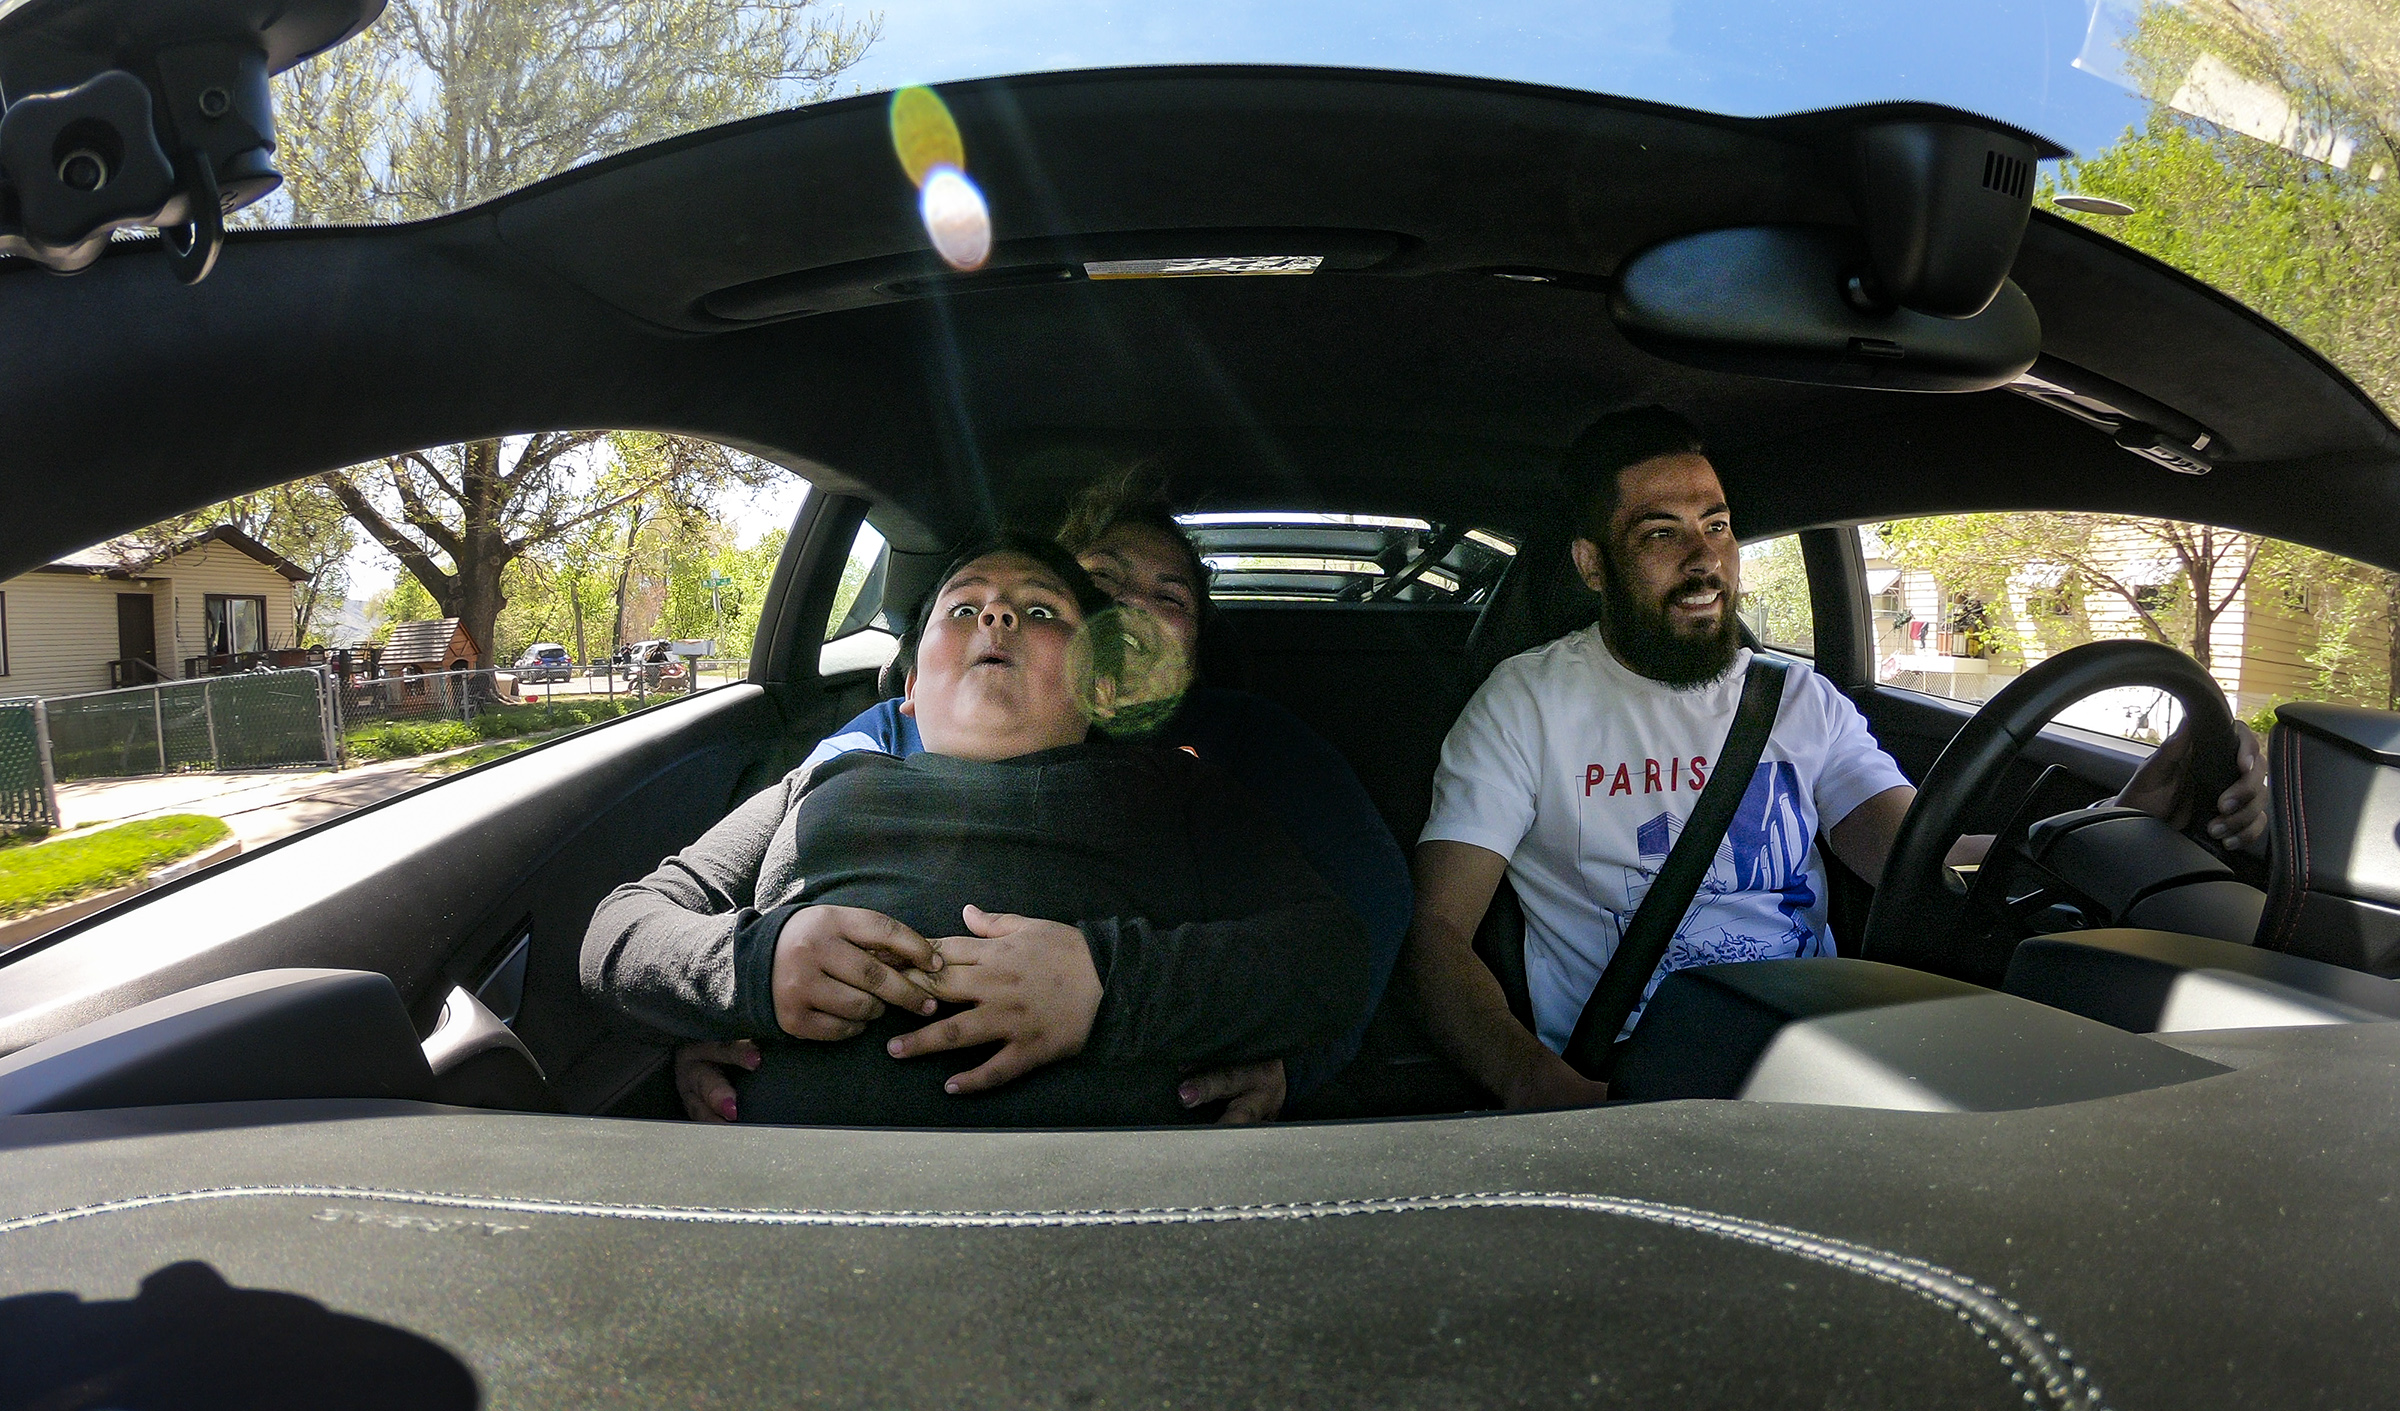 Adrian Zamarripa reacts as Jeremy Neves, owner of a Lamborghini Huracan, steps on the gas as Adrian and his mother, Beatriz Flores, go for a ride in Ogden on Tuesday, May 5, 2020 in Ogden. Adrian, who is 5, tried to drive his parents' car to California to get his own Lamborghini on Monday, He was stopped by the Utah Highway Patrol just a few miles from his home.